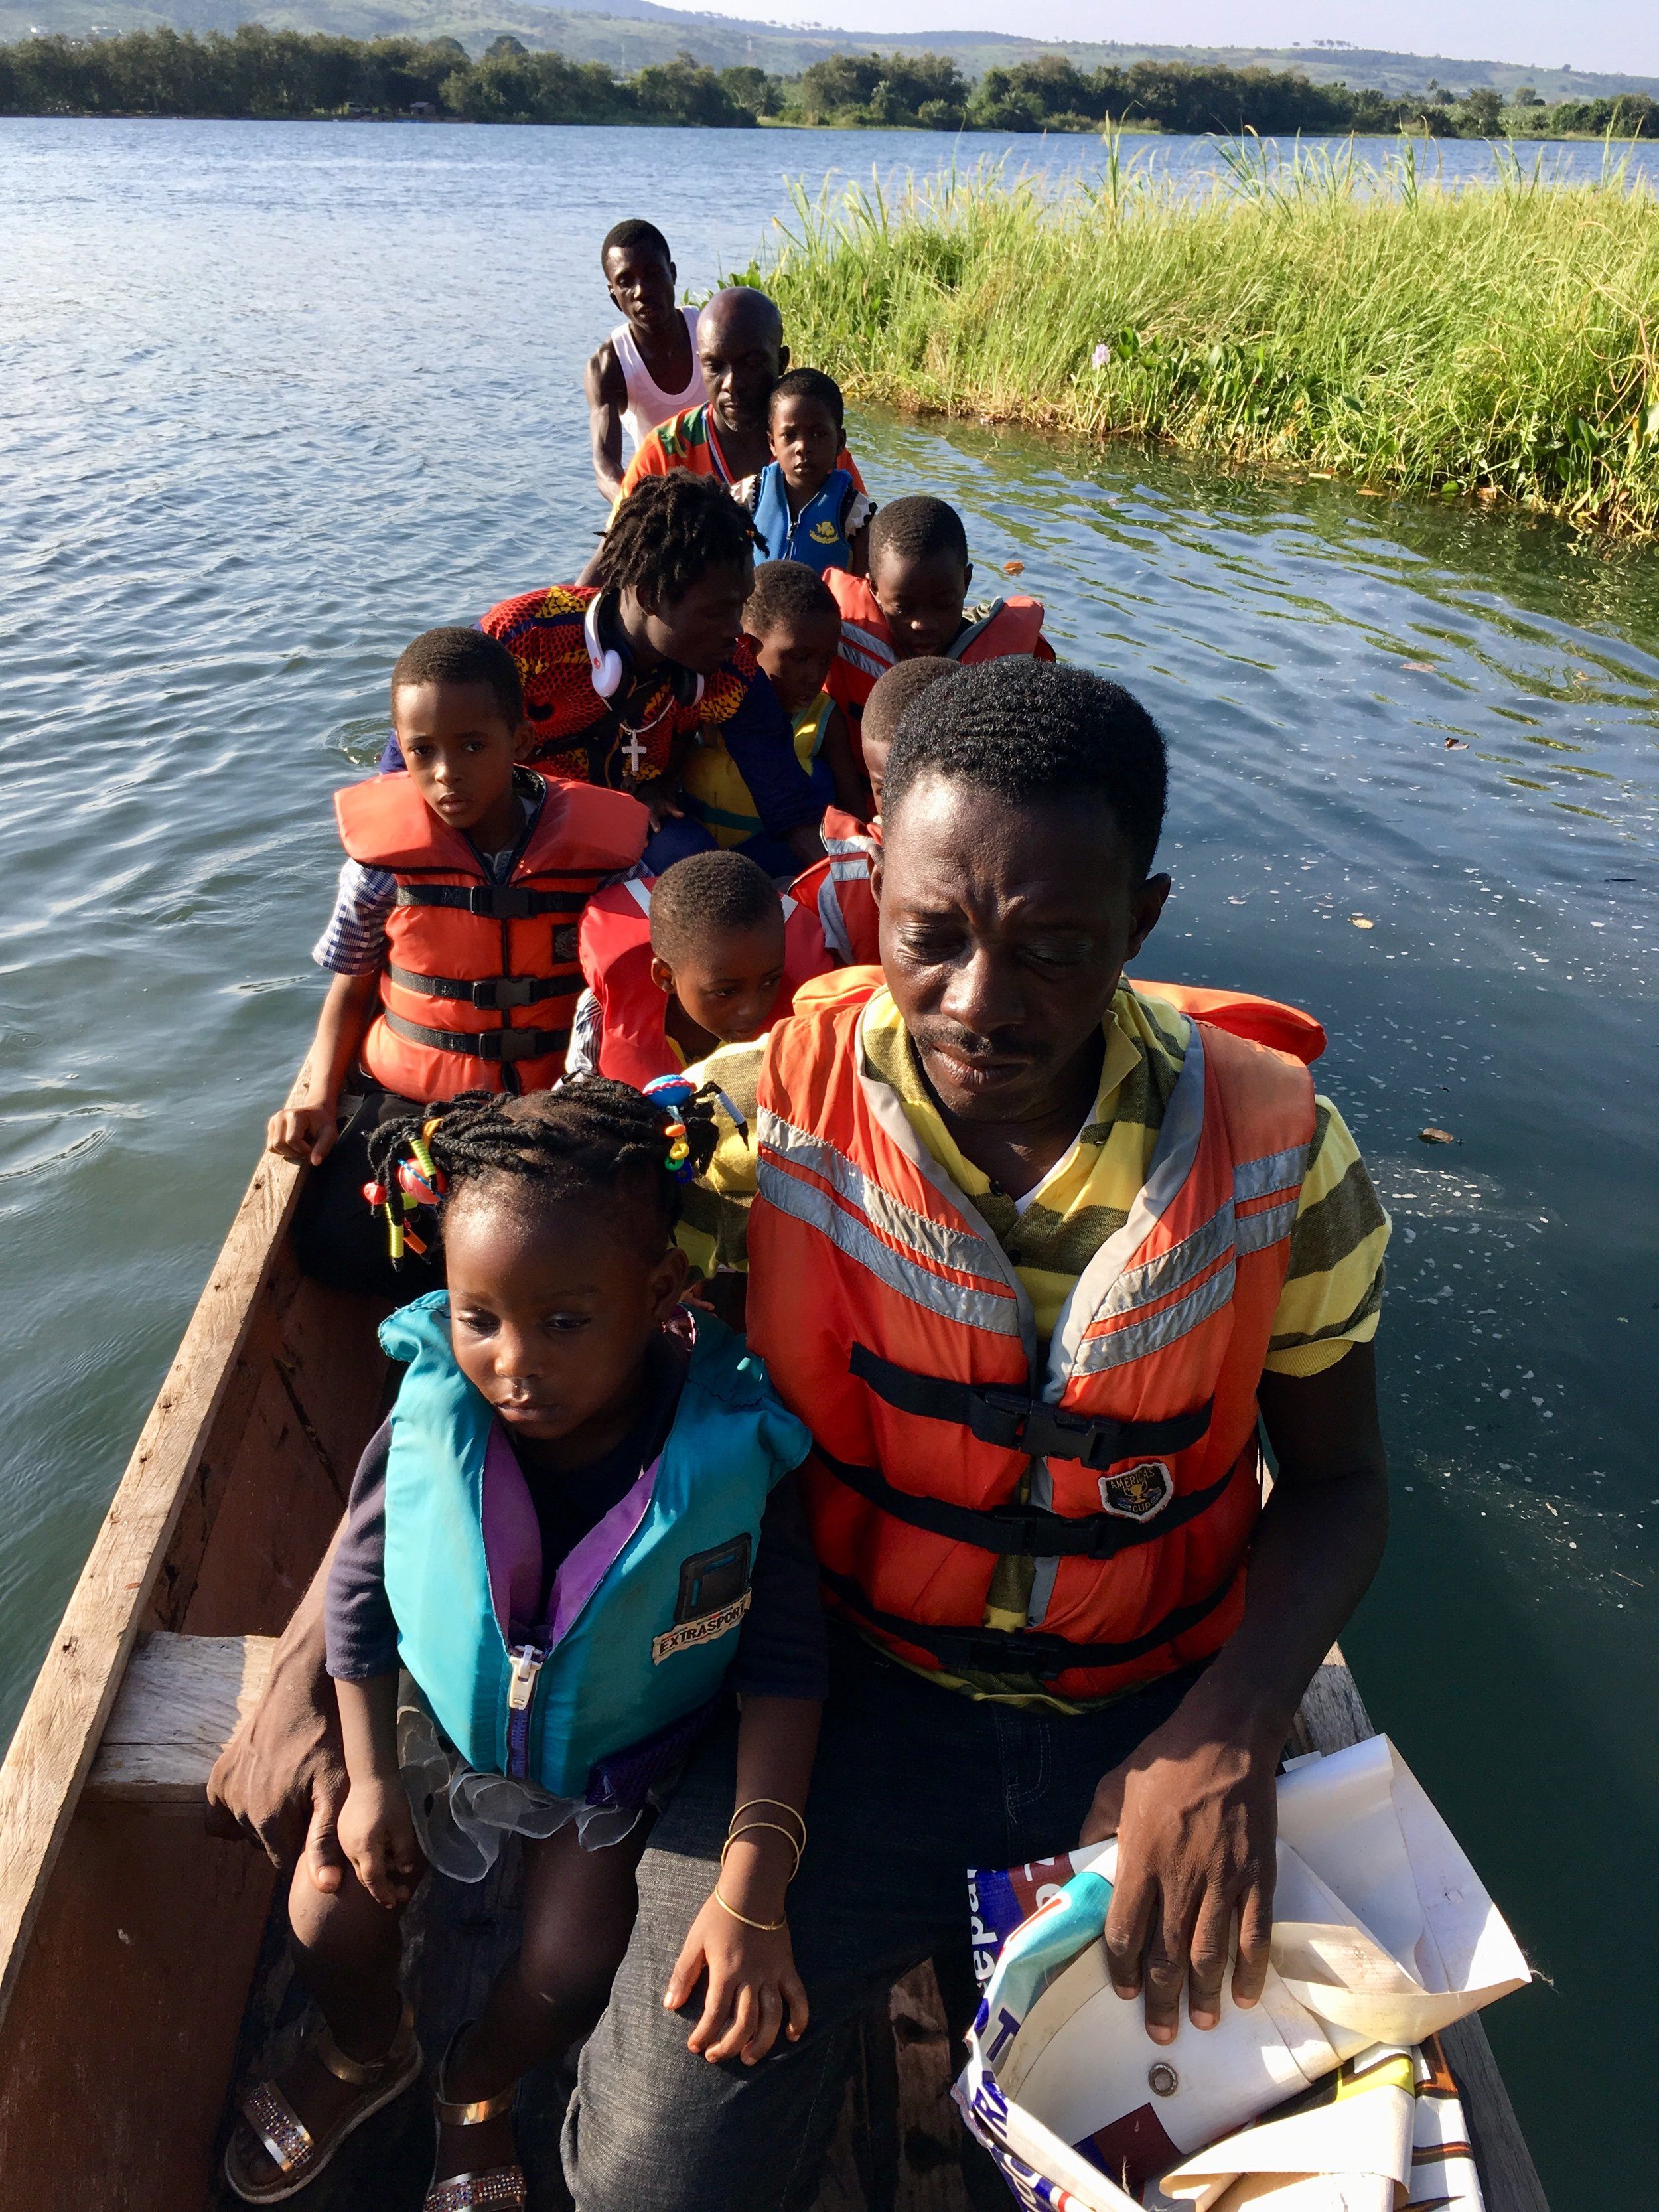 A day on the river in Ghana…    #raftlikealocal #thisiswhatwedo #defianceasalifestyle #raftdefiance